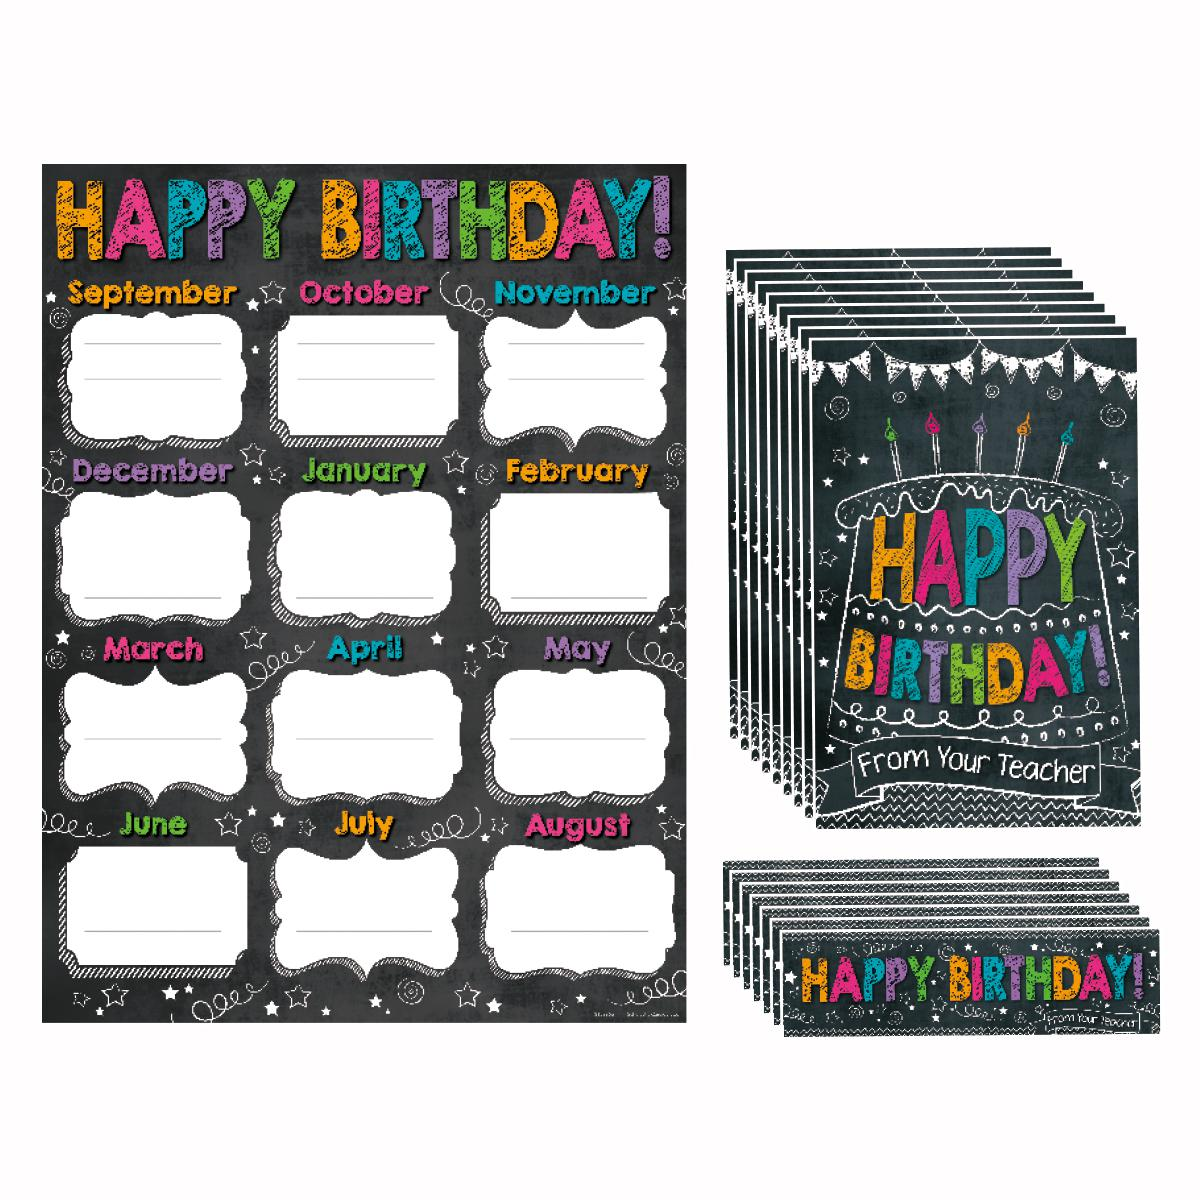 Chalkboard Happy Birthday Bulletin Board Set